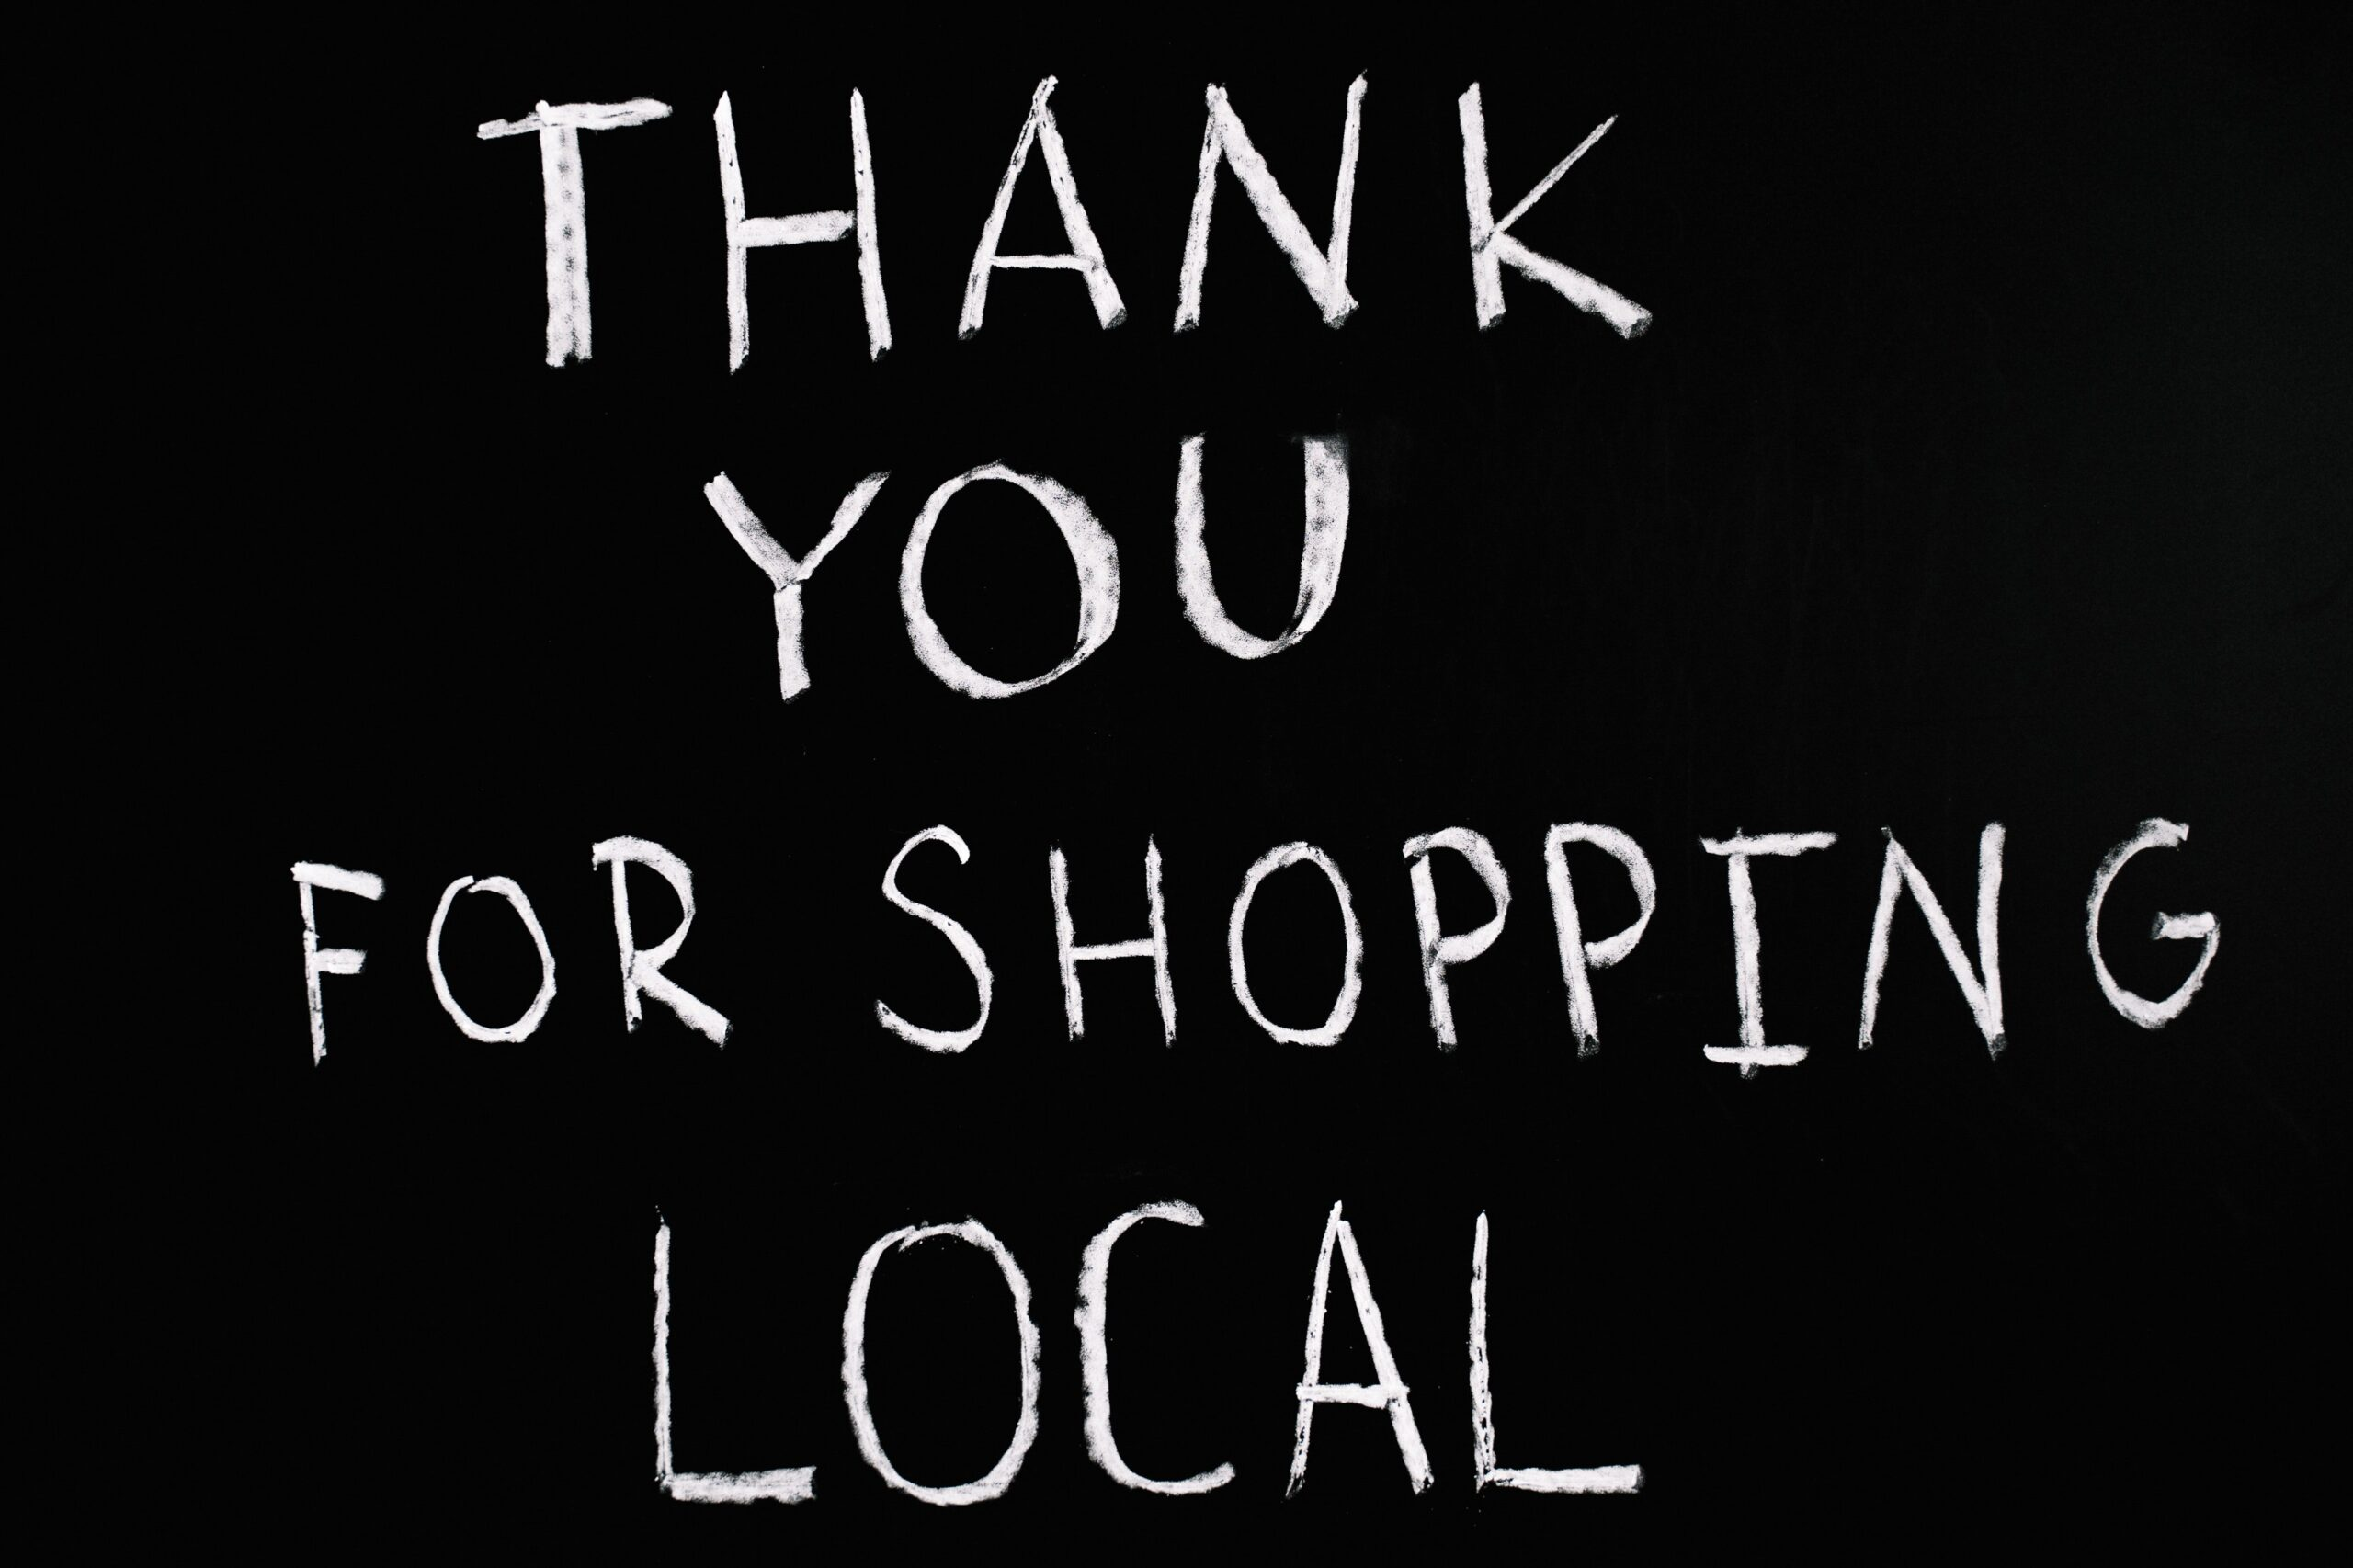 shop local helps consumers save money